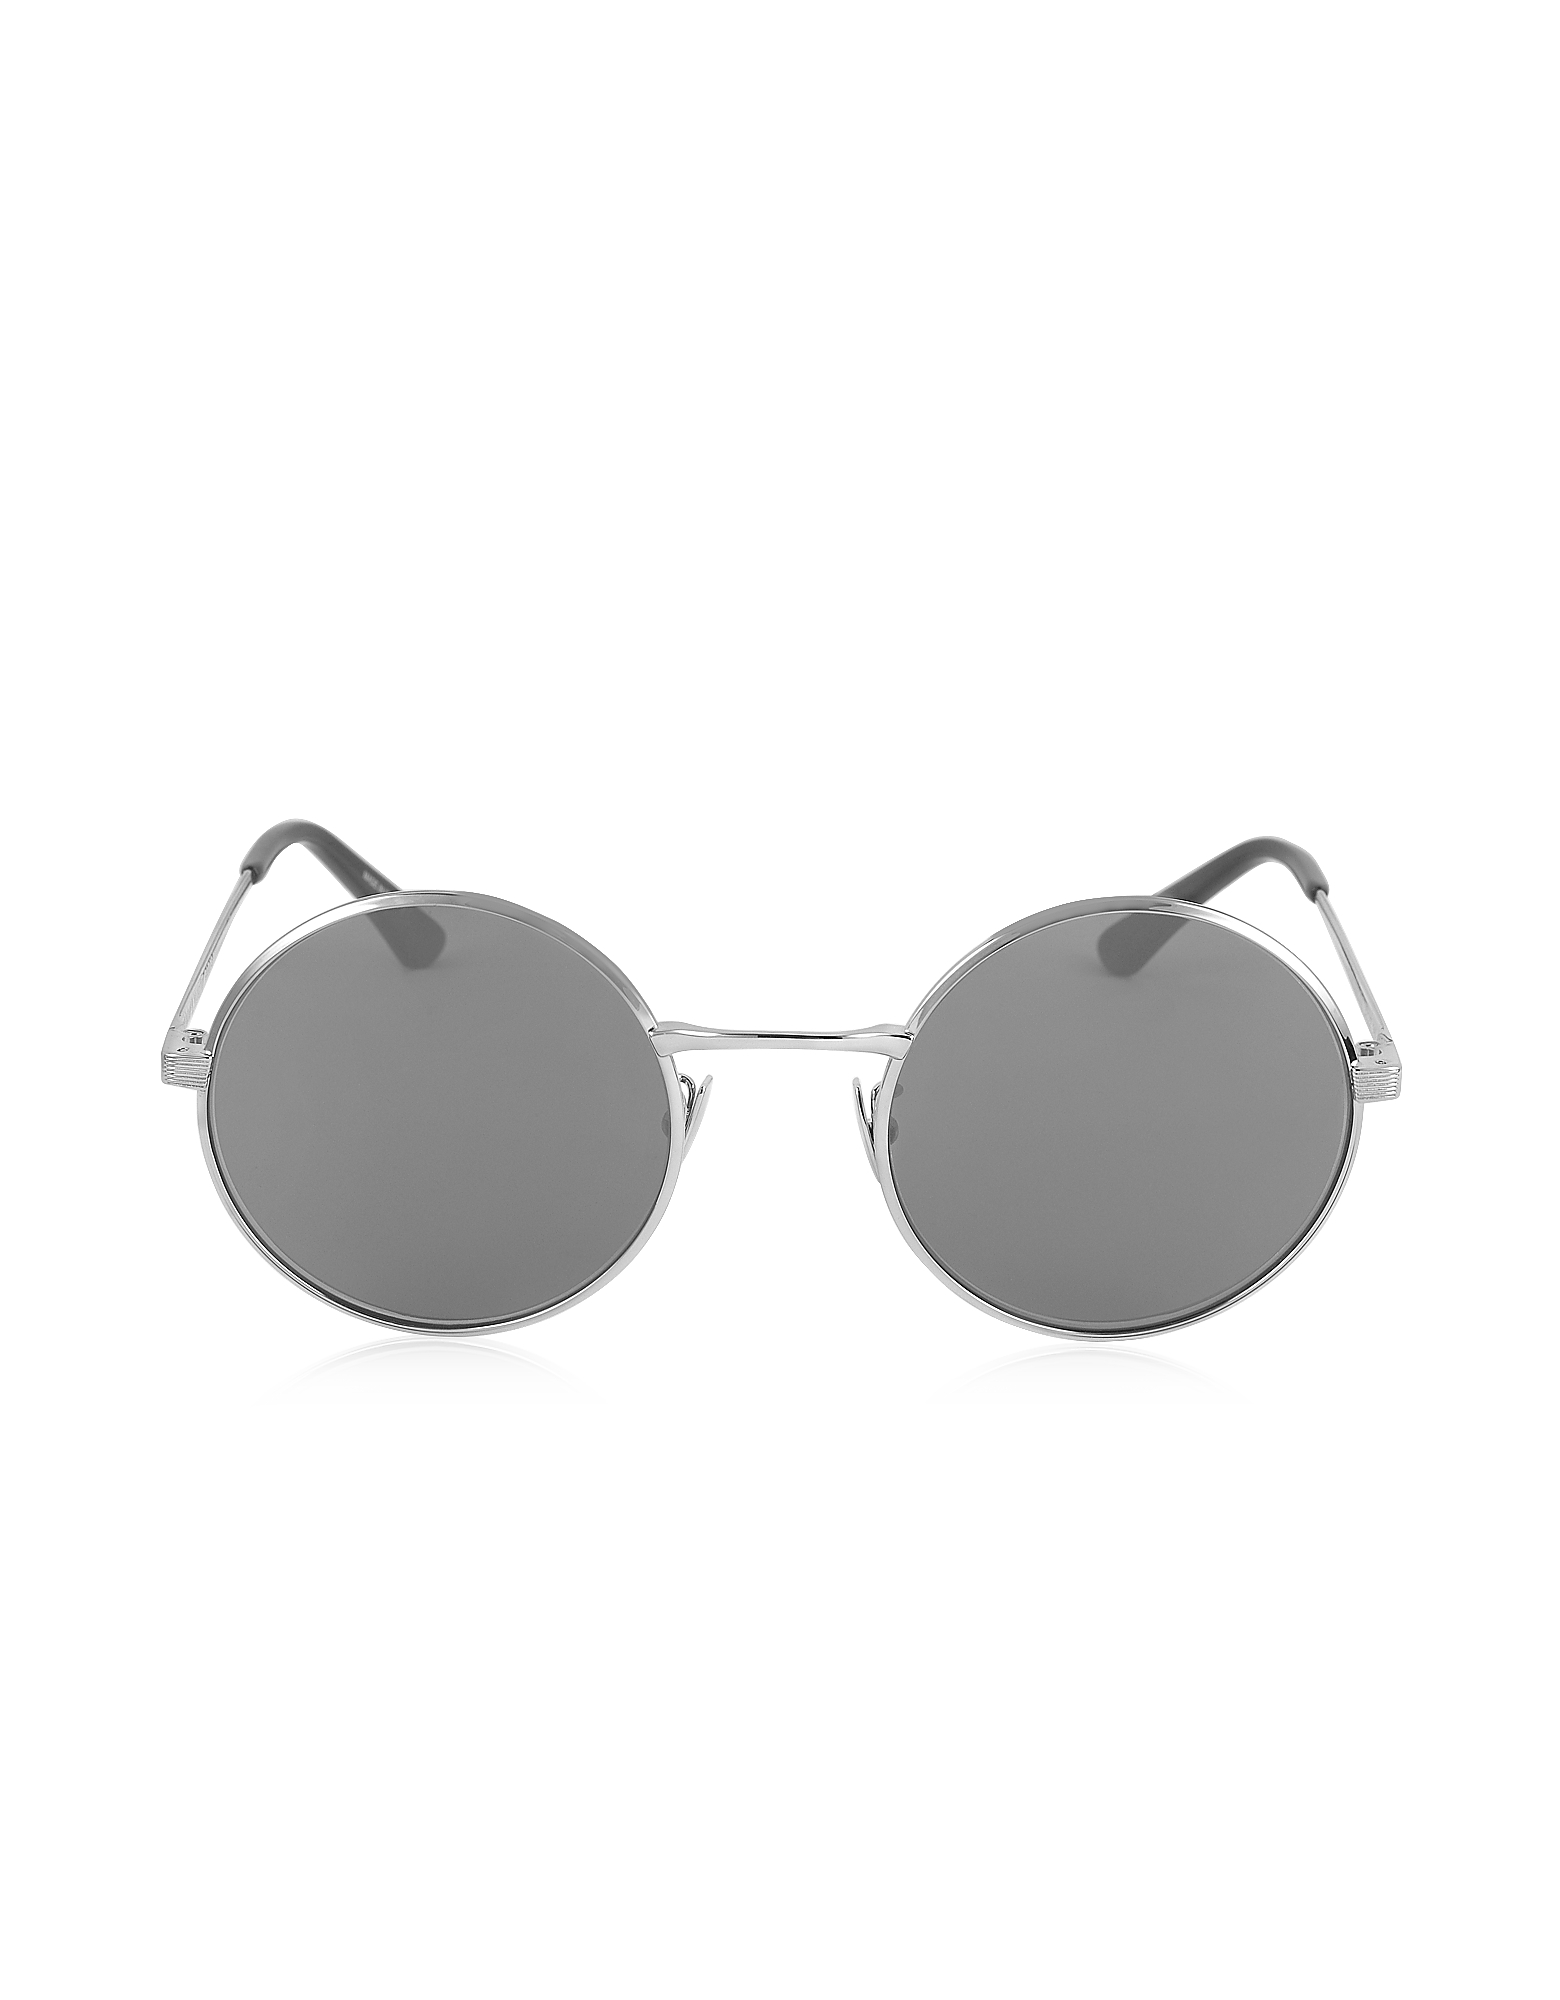 Saint Laurent Sunglasses, SL 136 ZERO Palladium Gray Metal Round-Frame Unisex Sunglasses